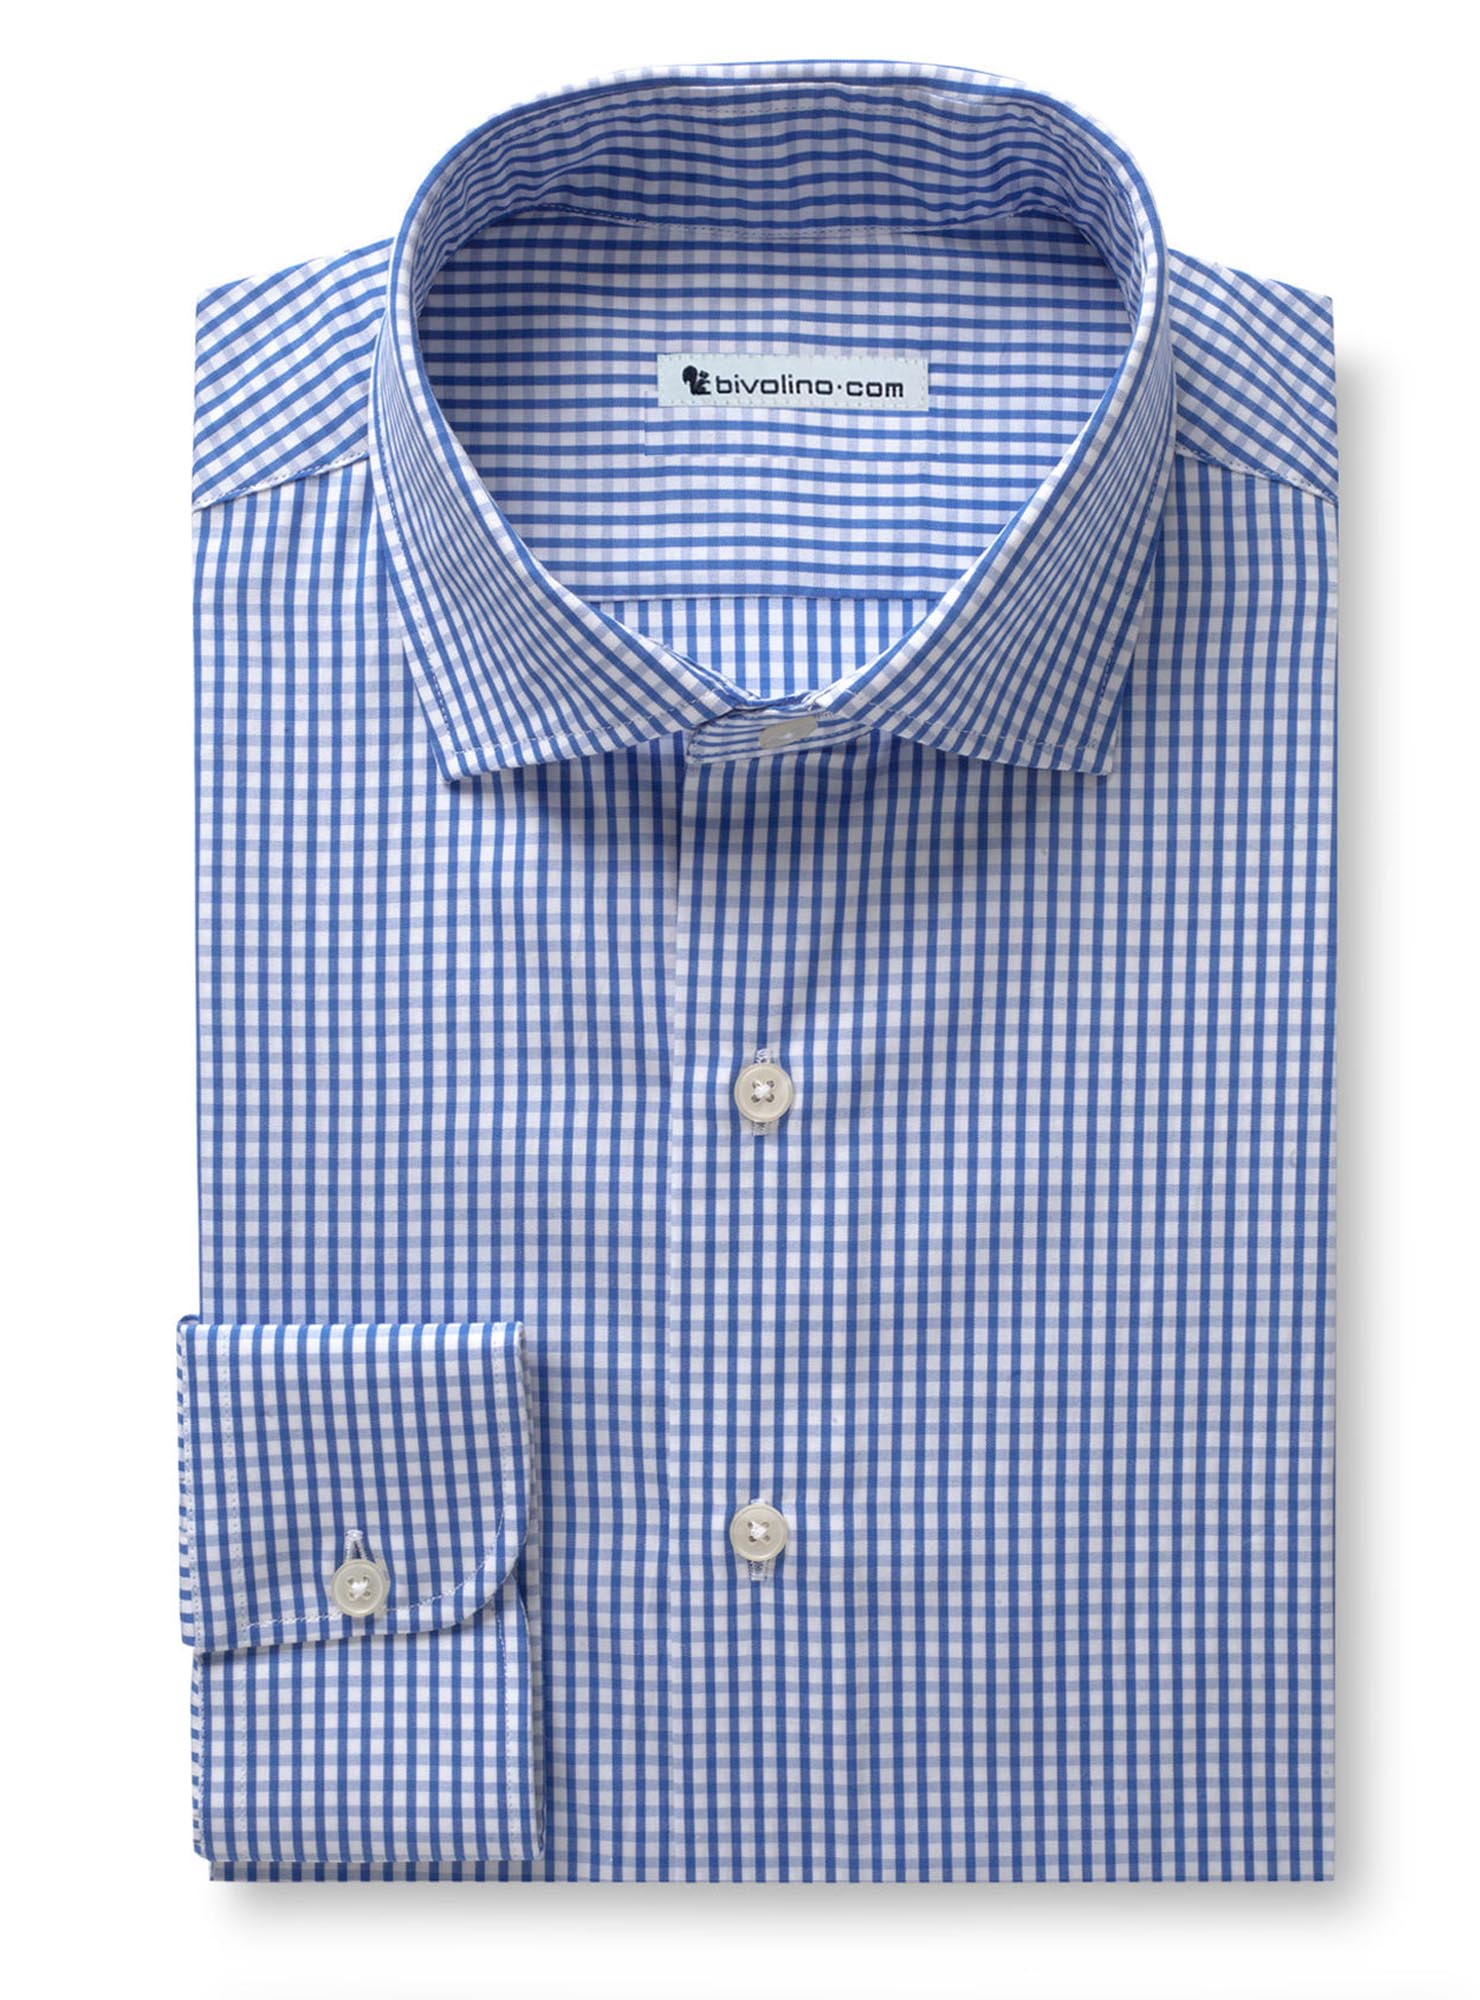 ALEAO - Men's blue check shirt - DOCRA 3